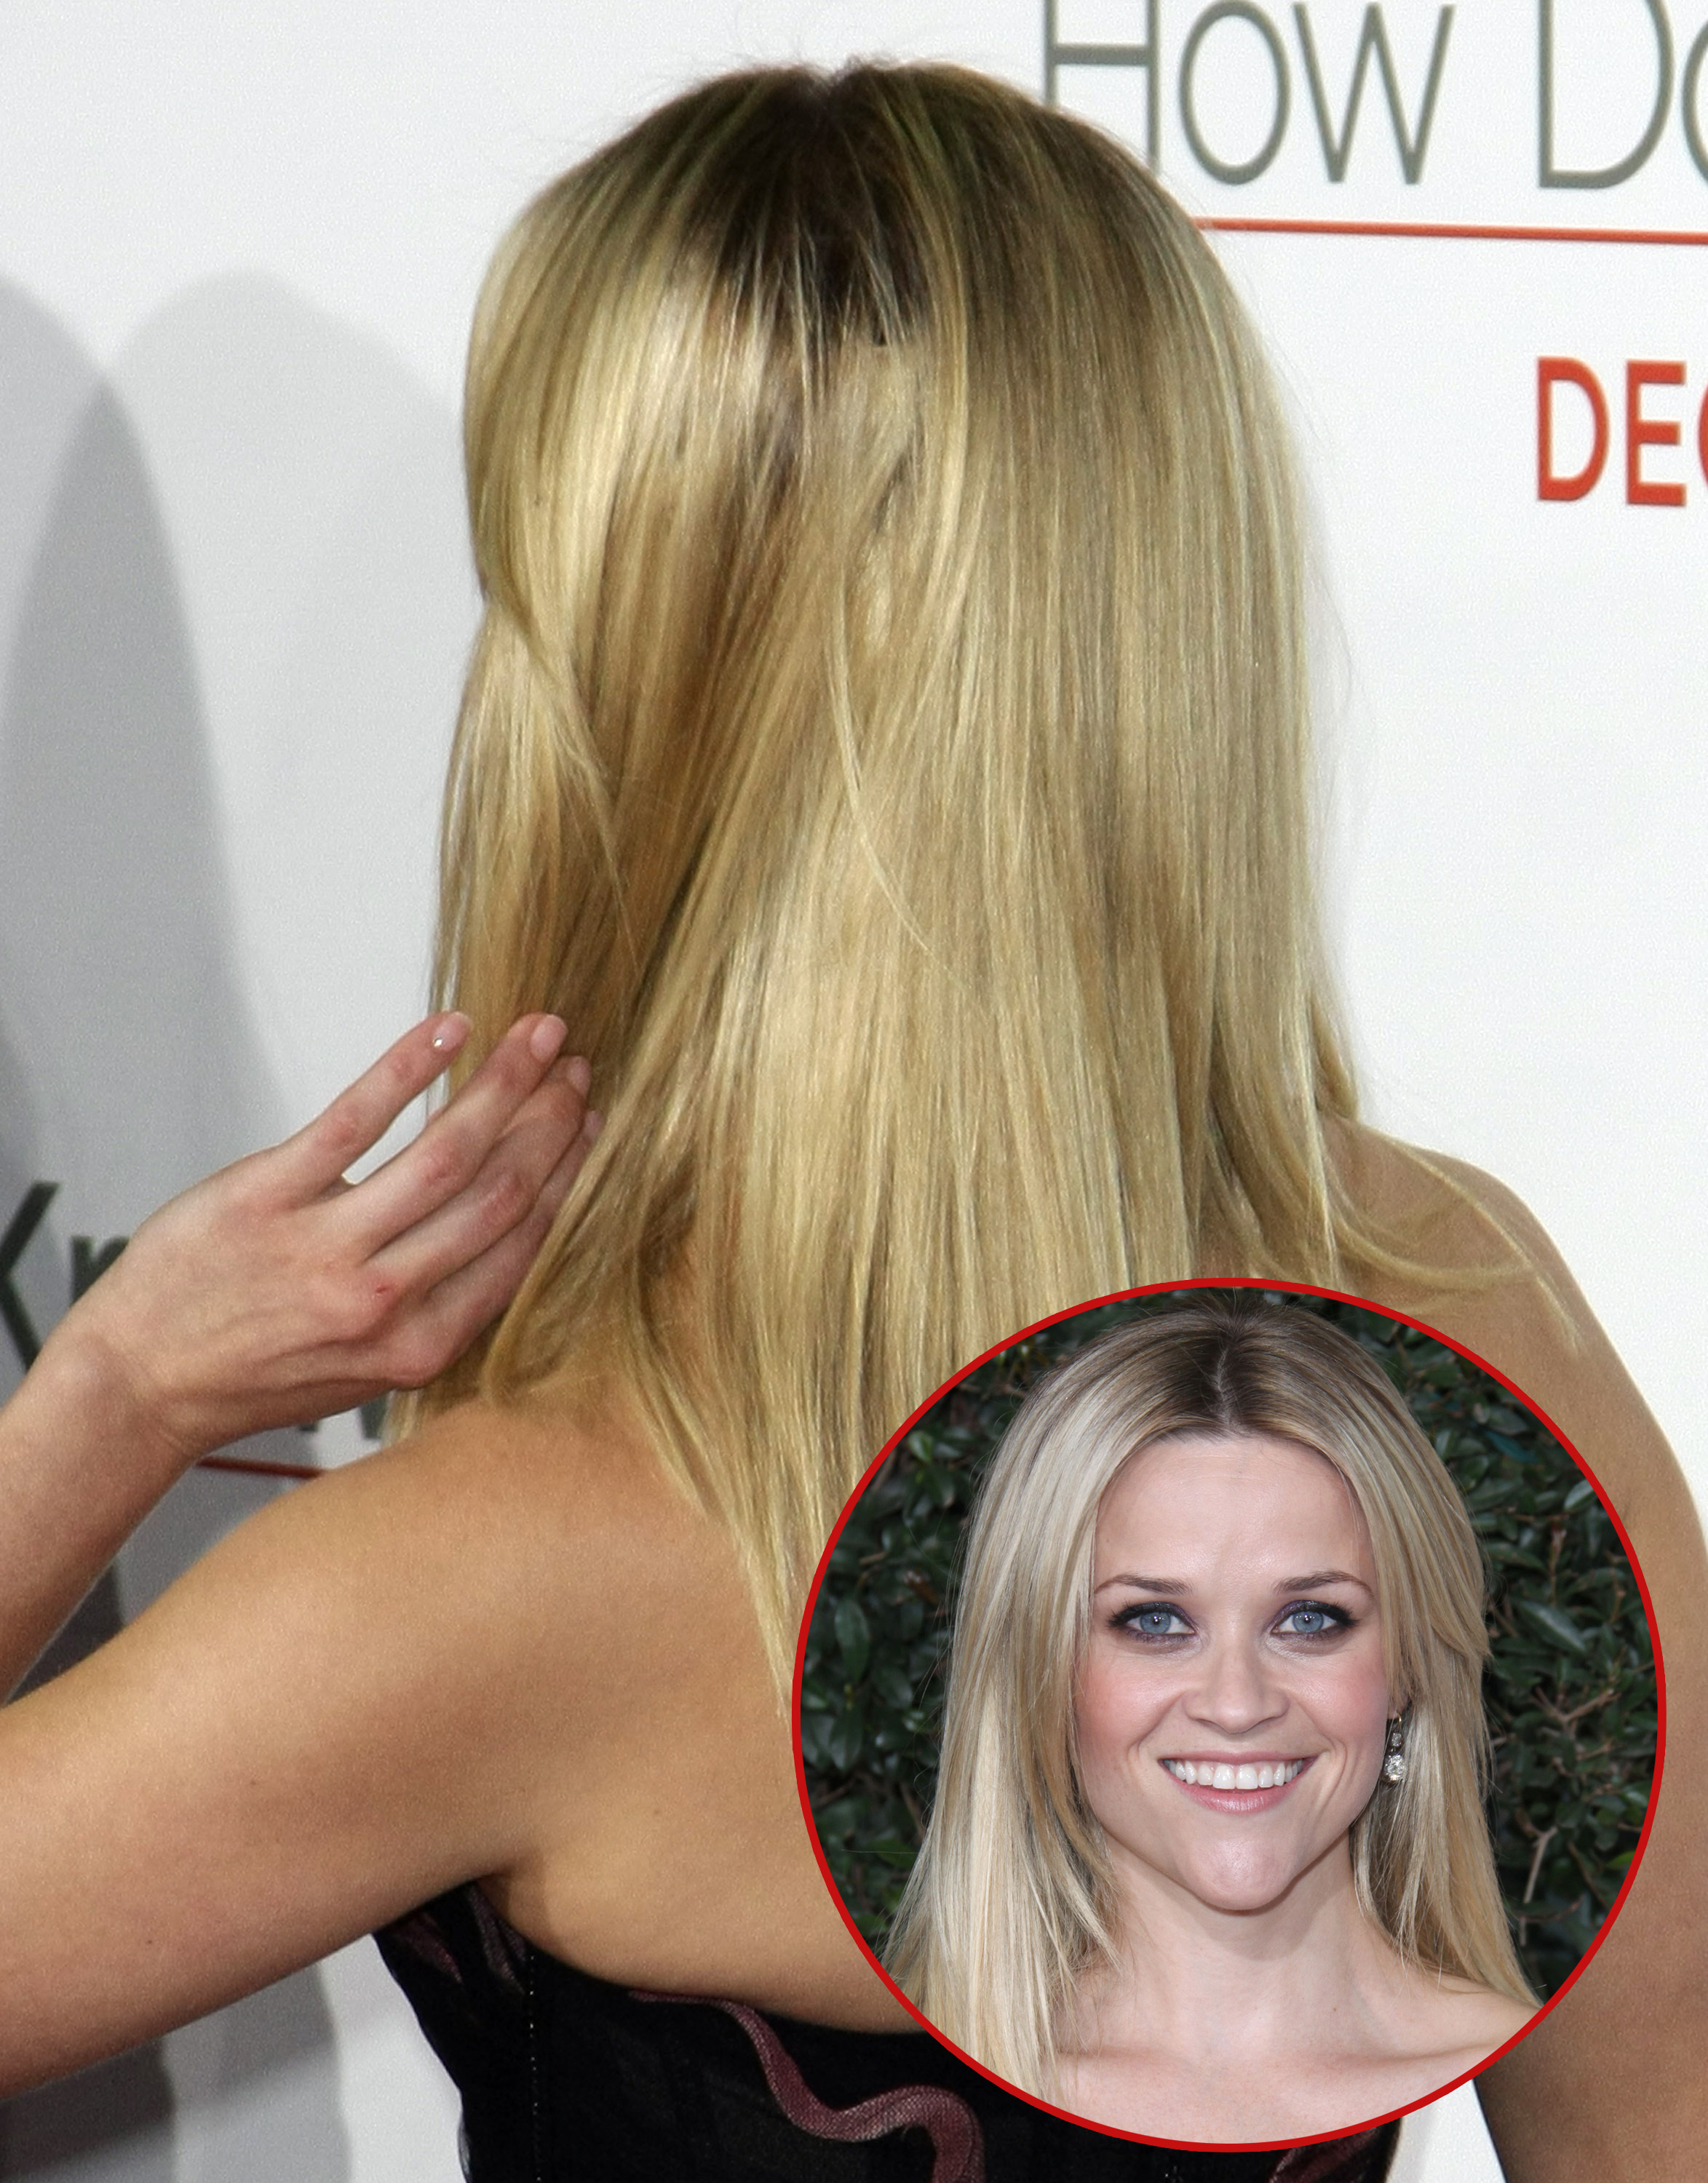 Reese Witherspoon hair extension